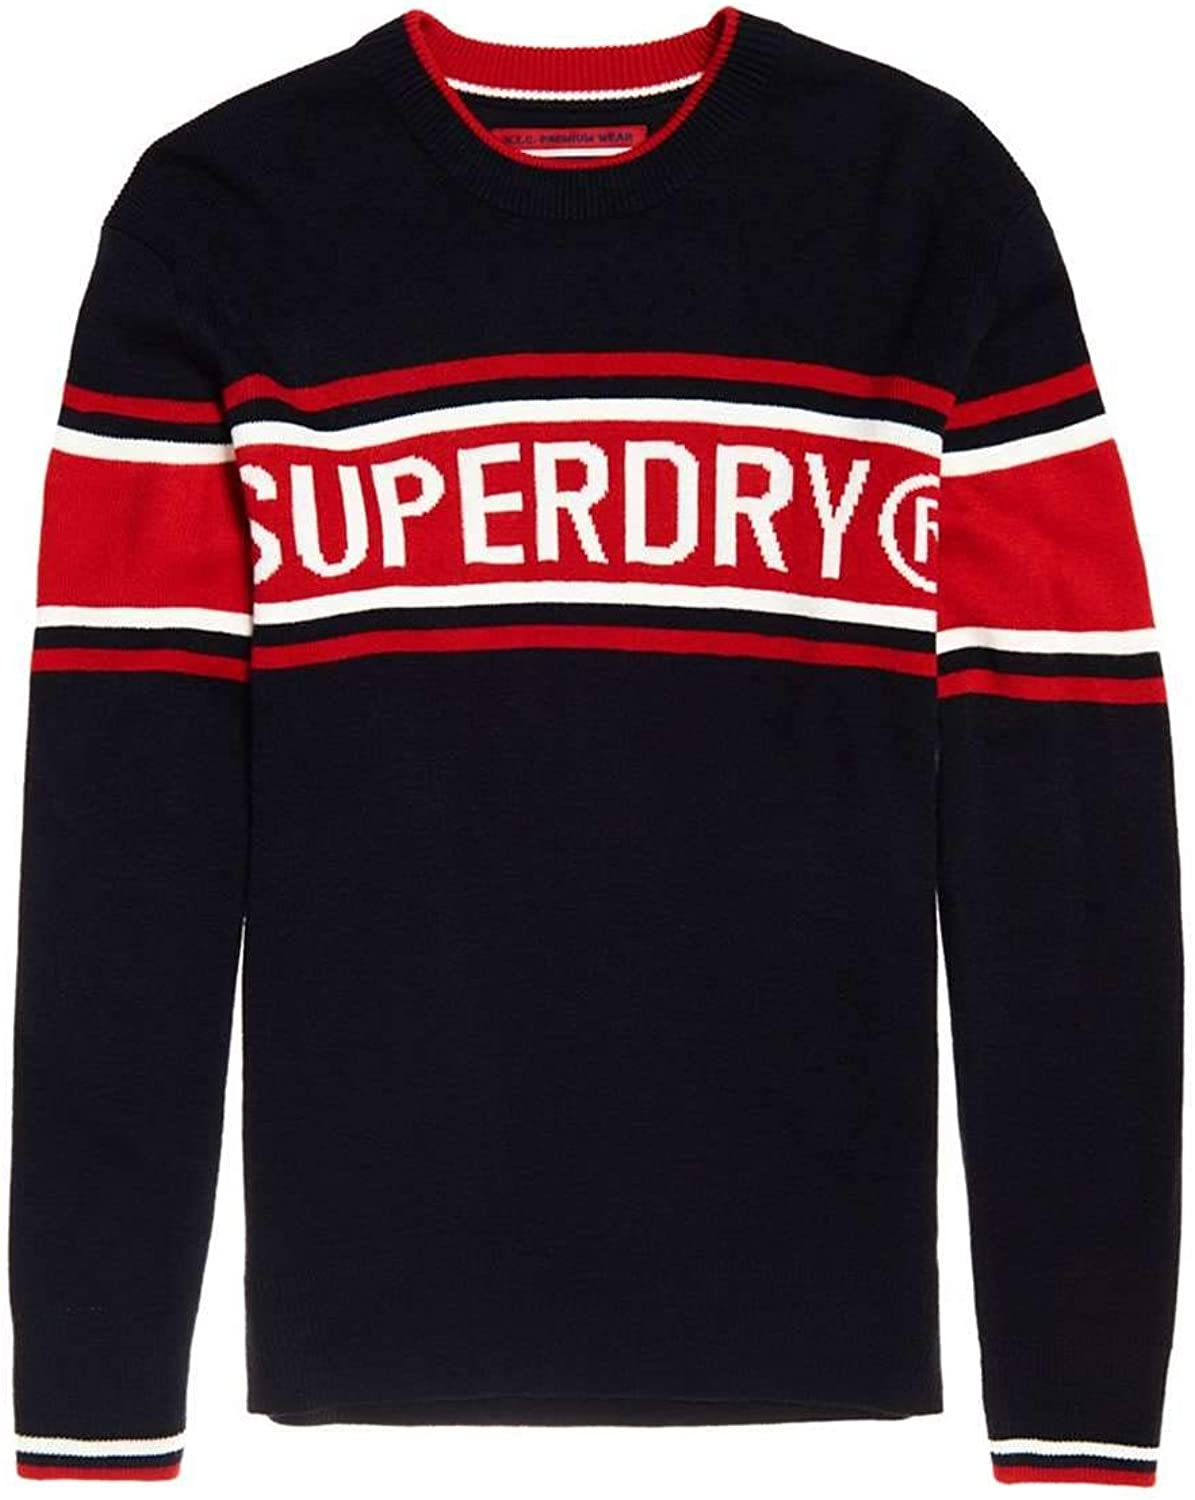 TALLA 3XL. Superdry Jersey Oslo Racer